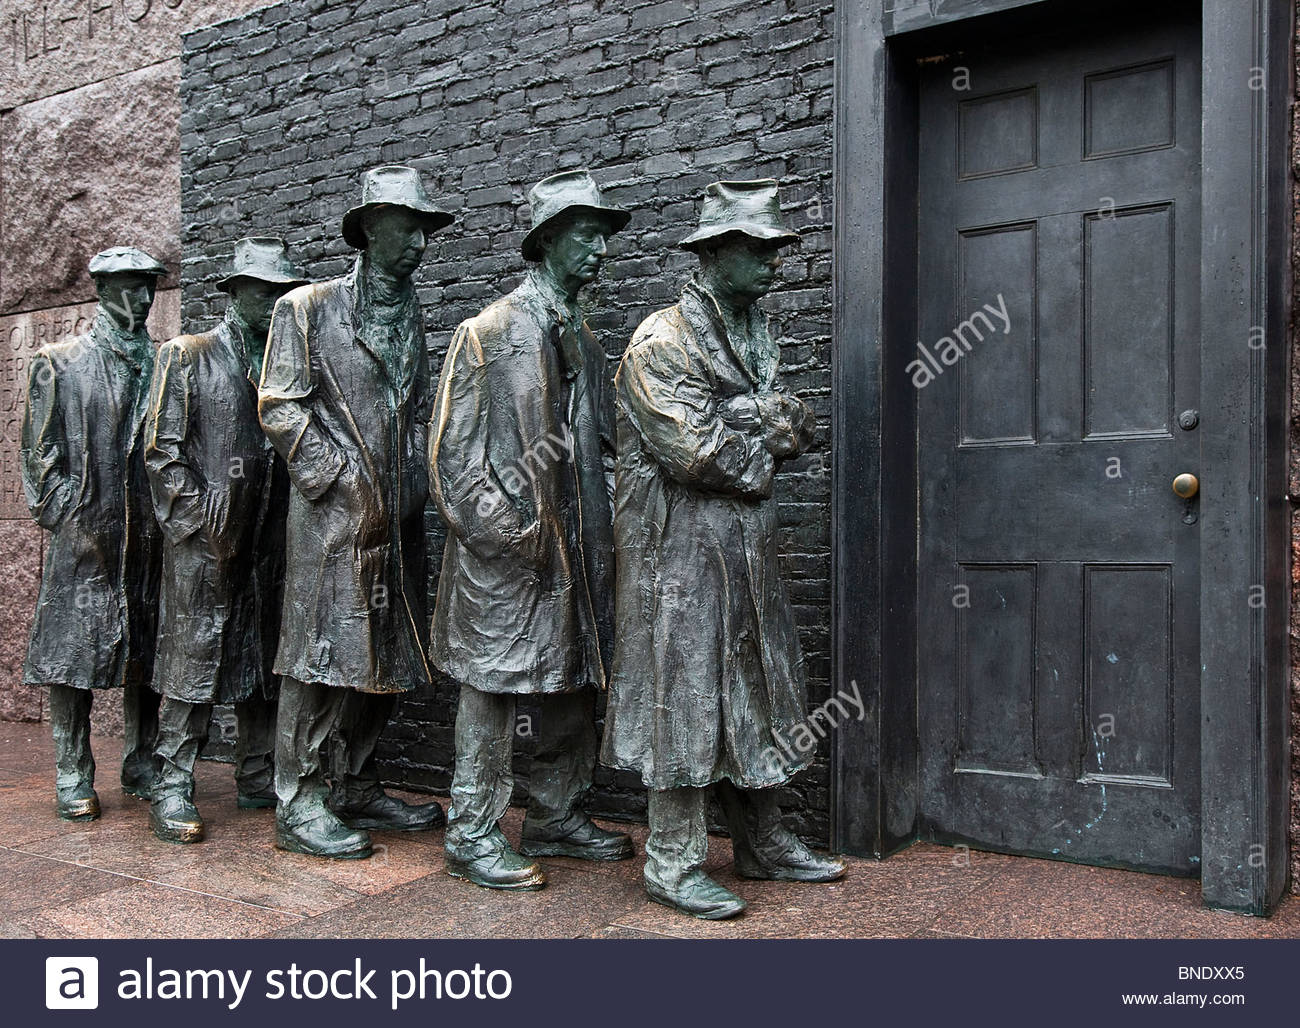 Statue of Great Depression bread line, Franklin Delano Roosevelt Memorial, Washington DC, USA - Stock Image